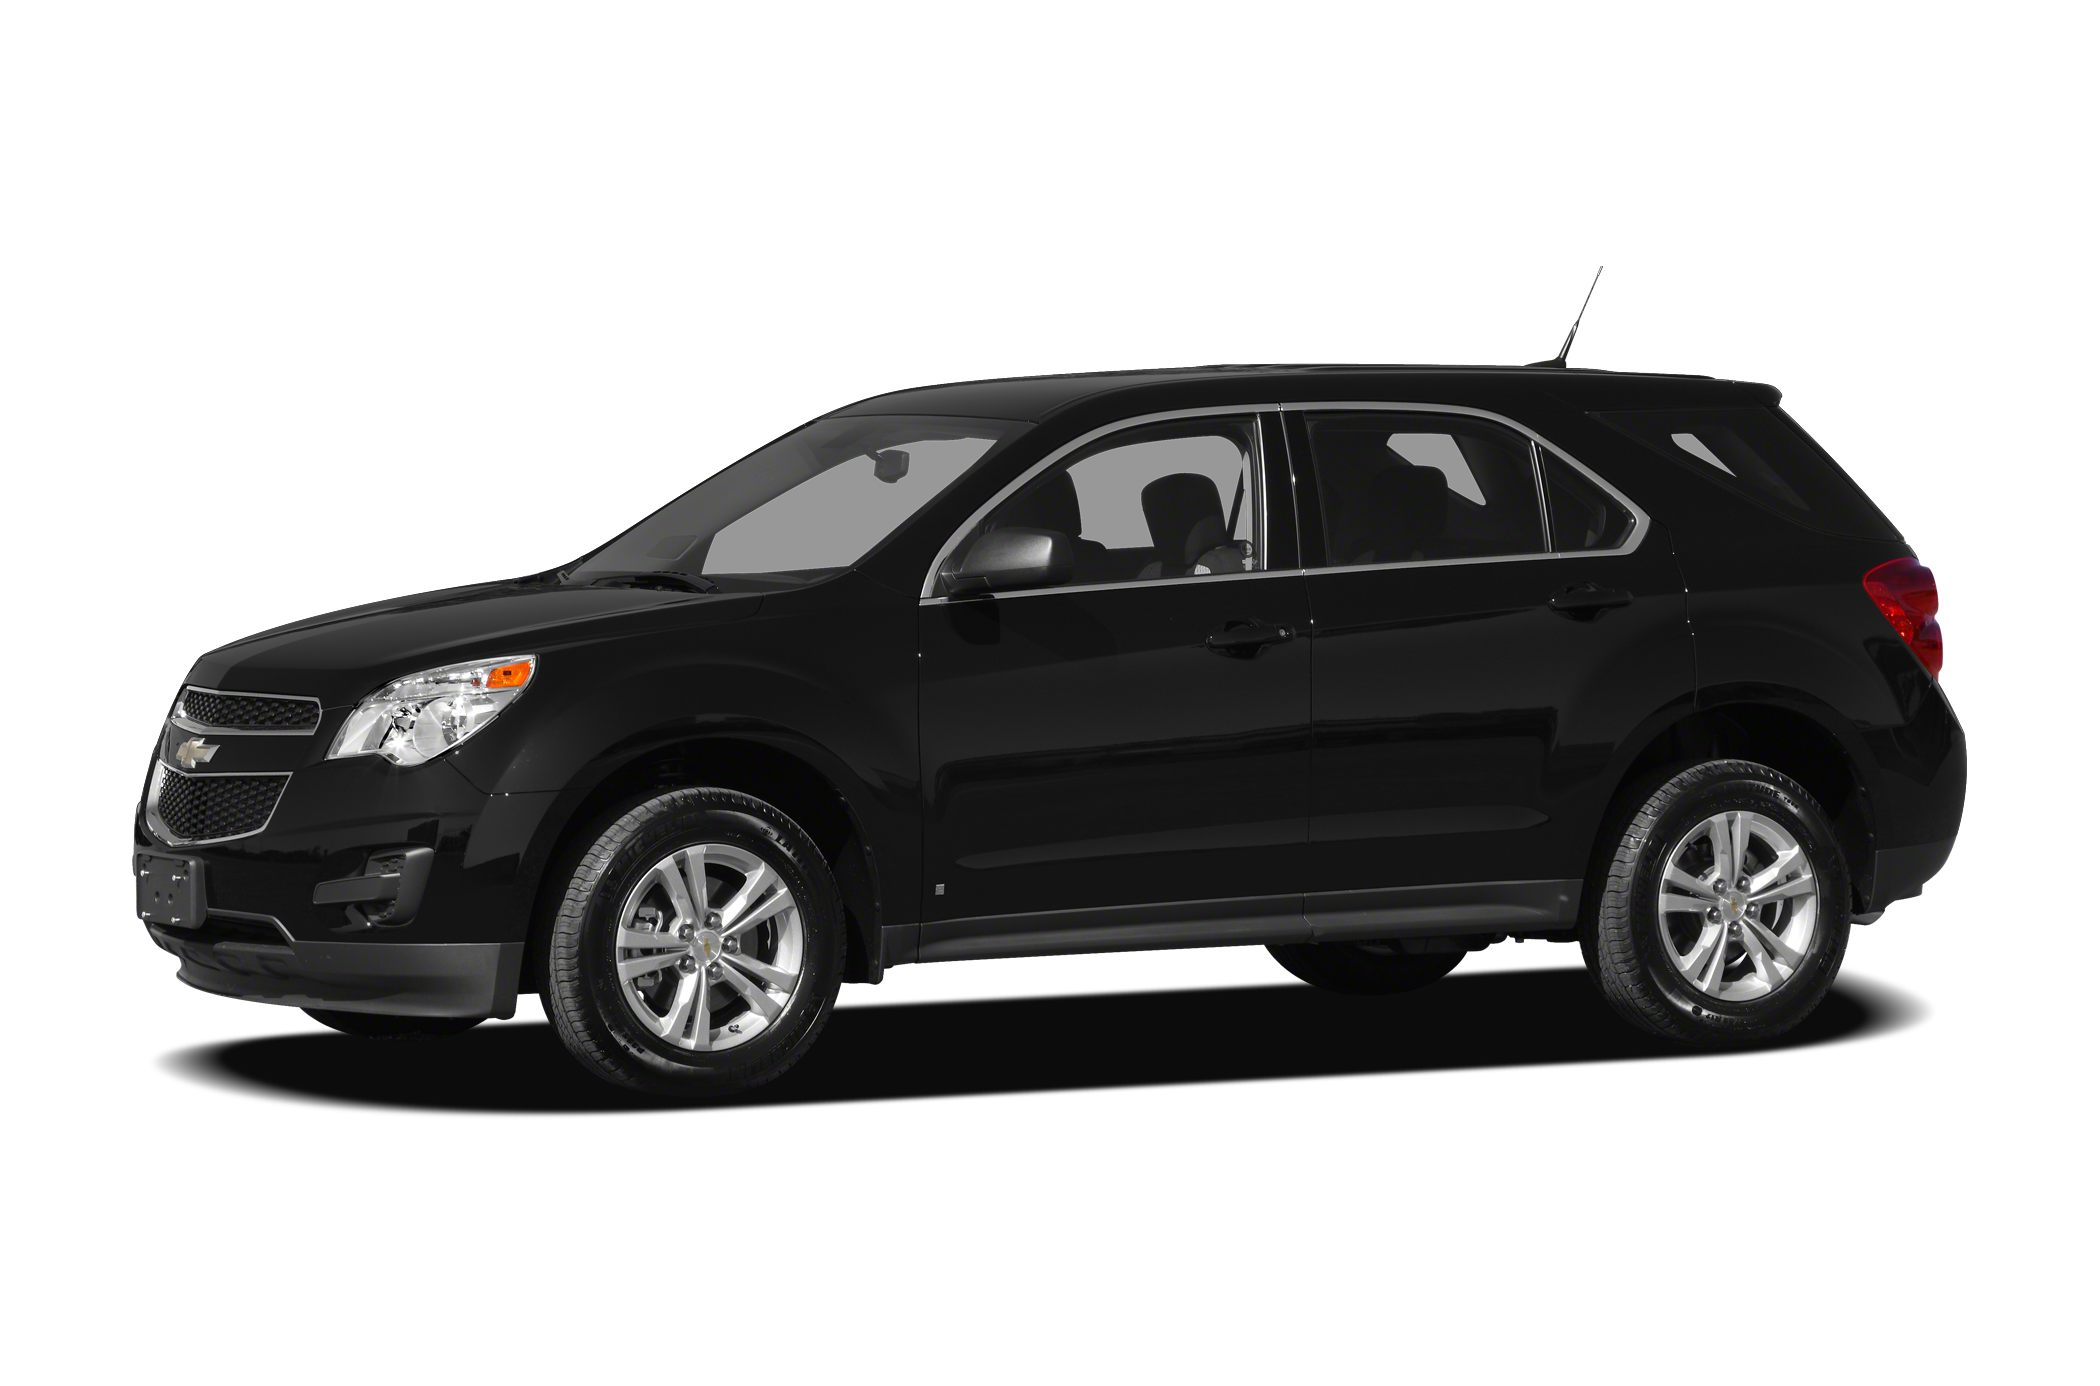 2012 Chevrolet Equinox LS SUV for sale in Tampa for $0 with 42,883 miles